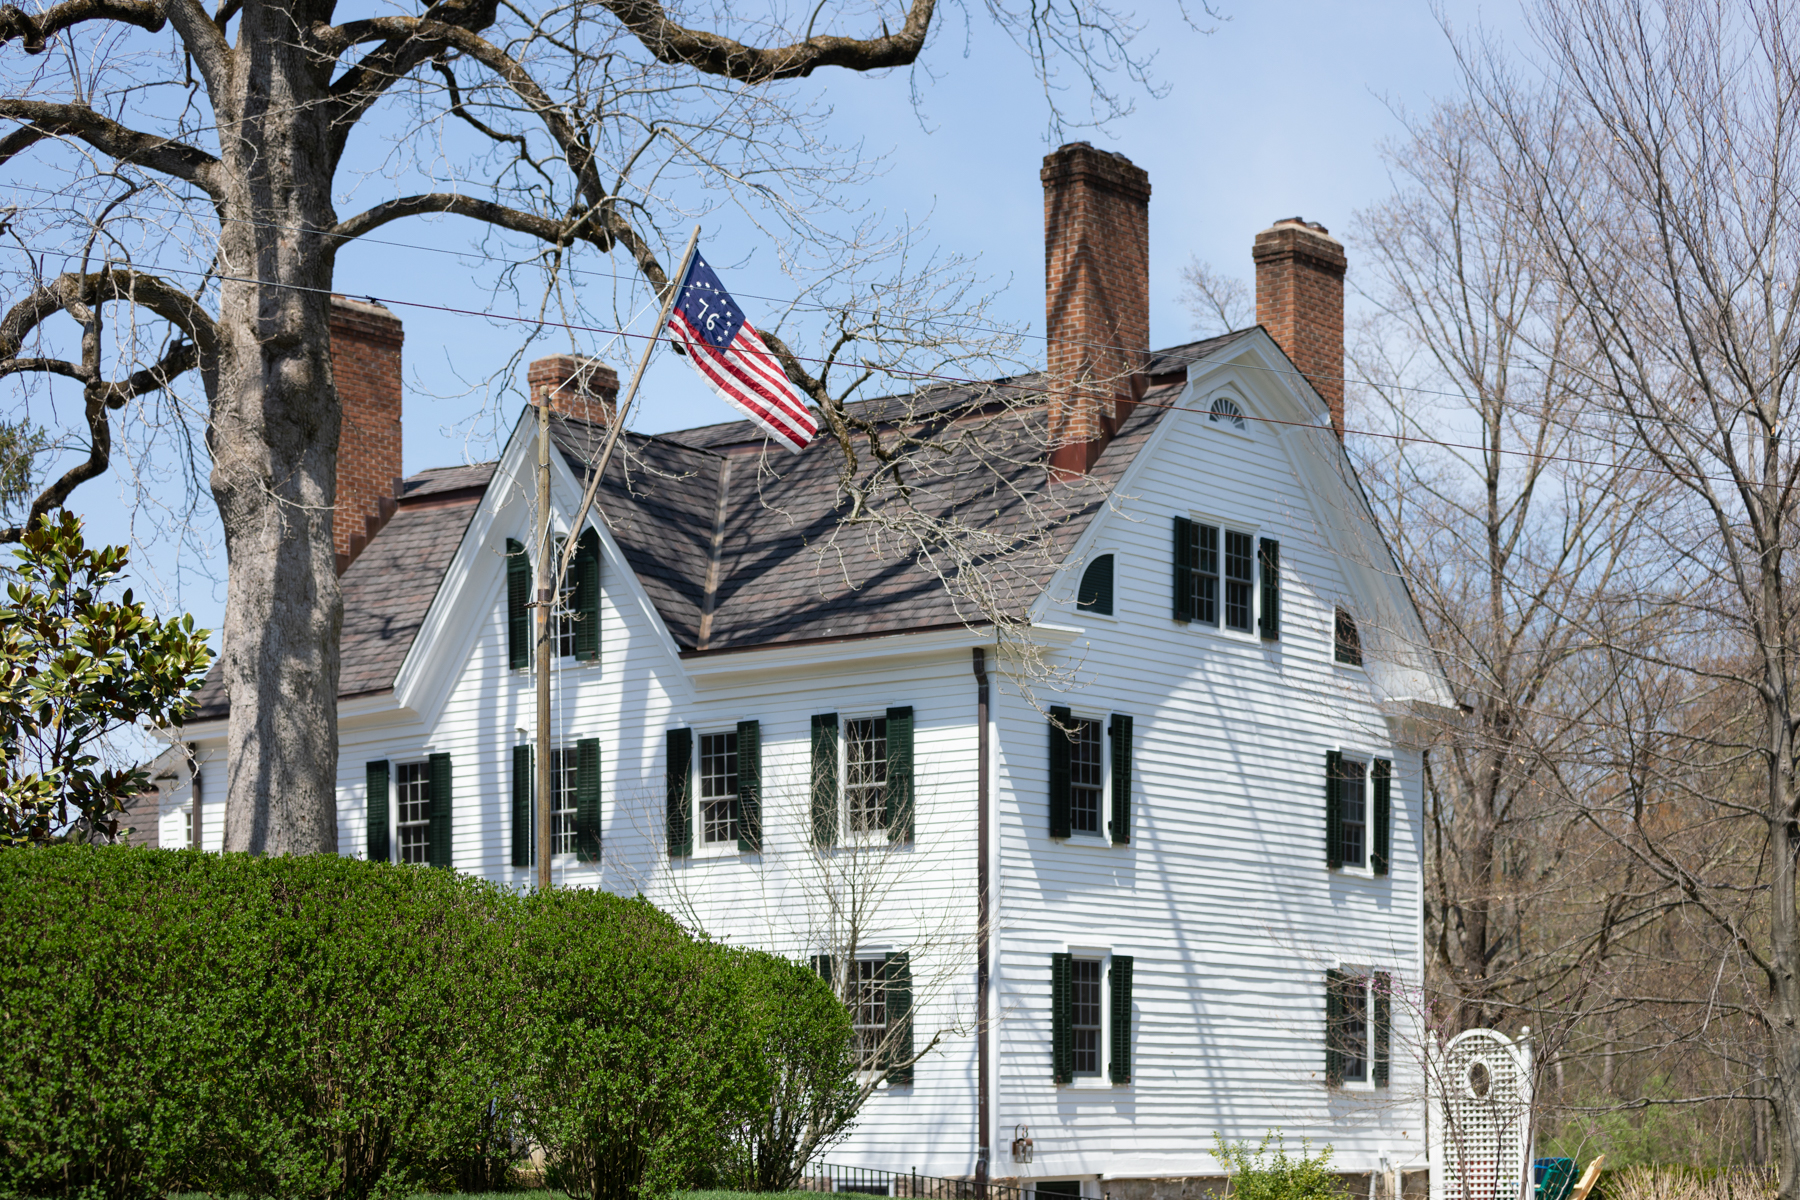 Moradia para Venda às Historic Colonial 277 Childs Road, Basking Ridge, Nova Jersey 07920 Estados Unidos